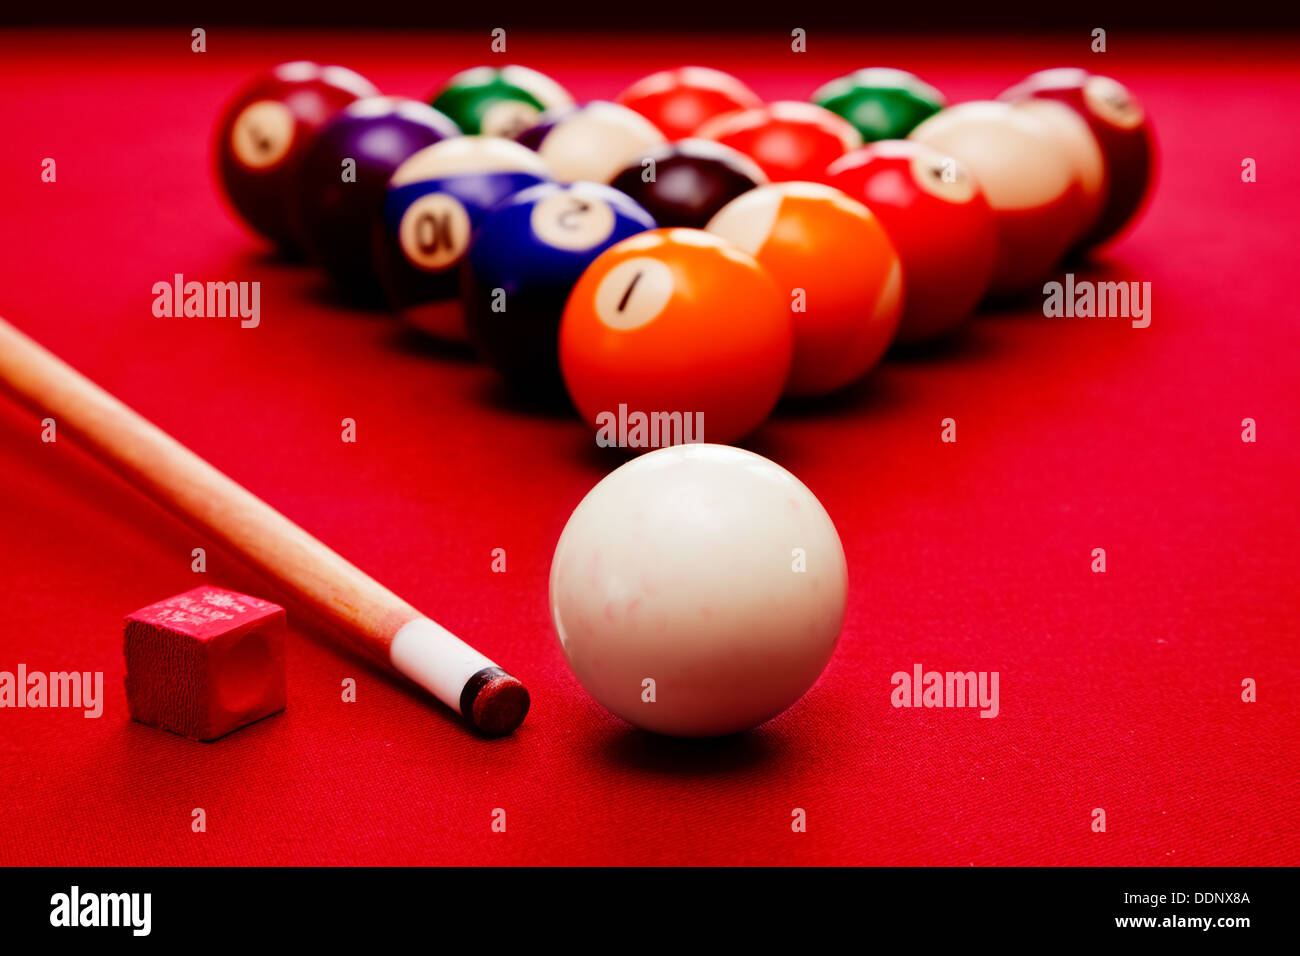 Billiards pool game. Cue ball, cue, color balls in triangle, chalk. Red cloth table - Stock Image